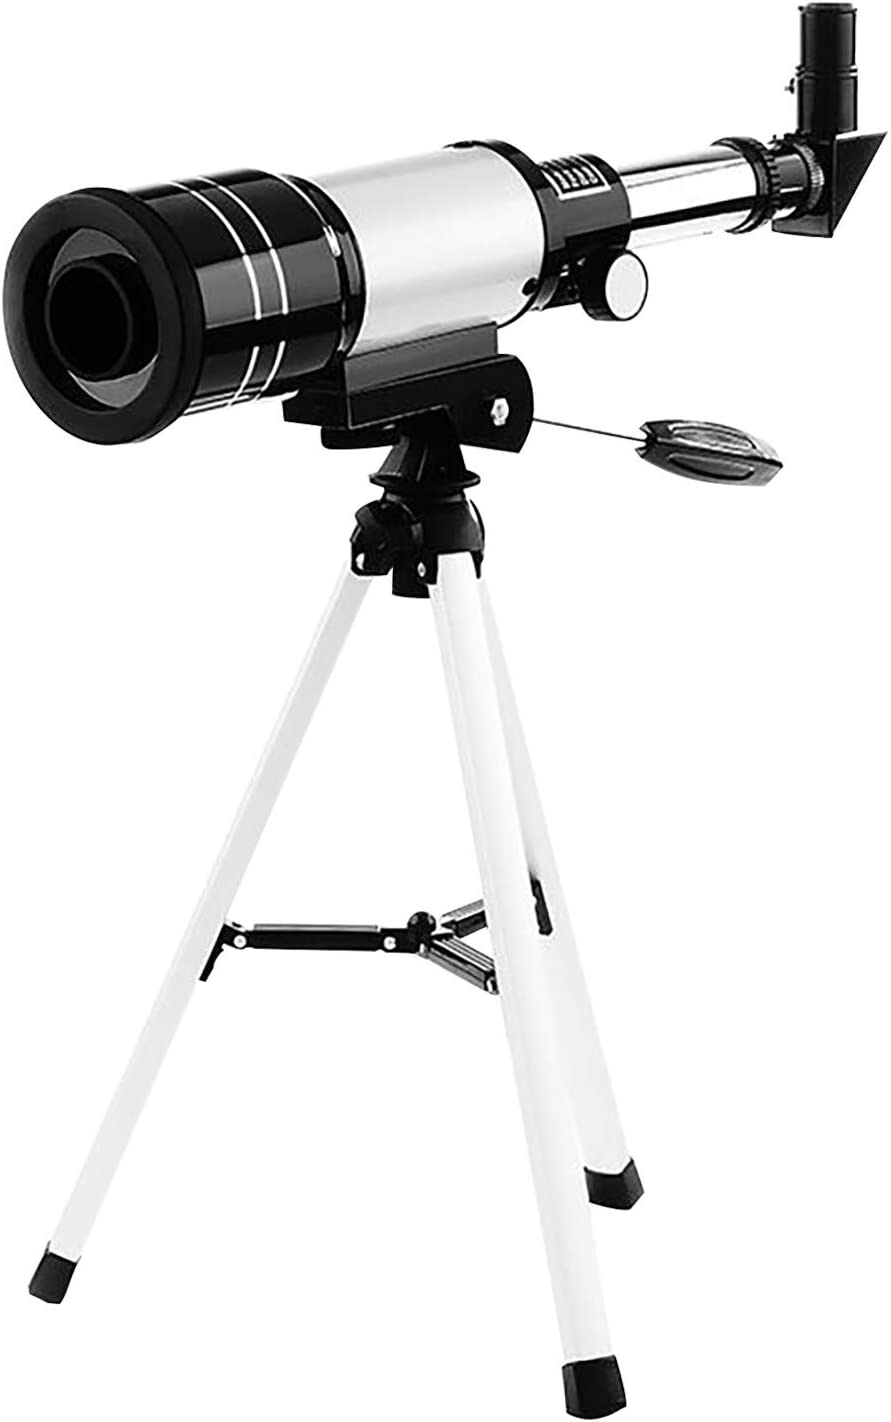 Juesi Telescope Finally popular brand for Astronomy SEAL limited product Kids Sc Adults Beginners Children